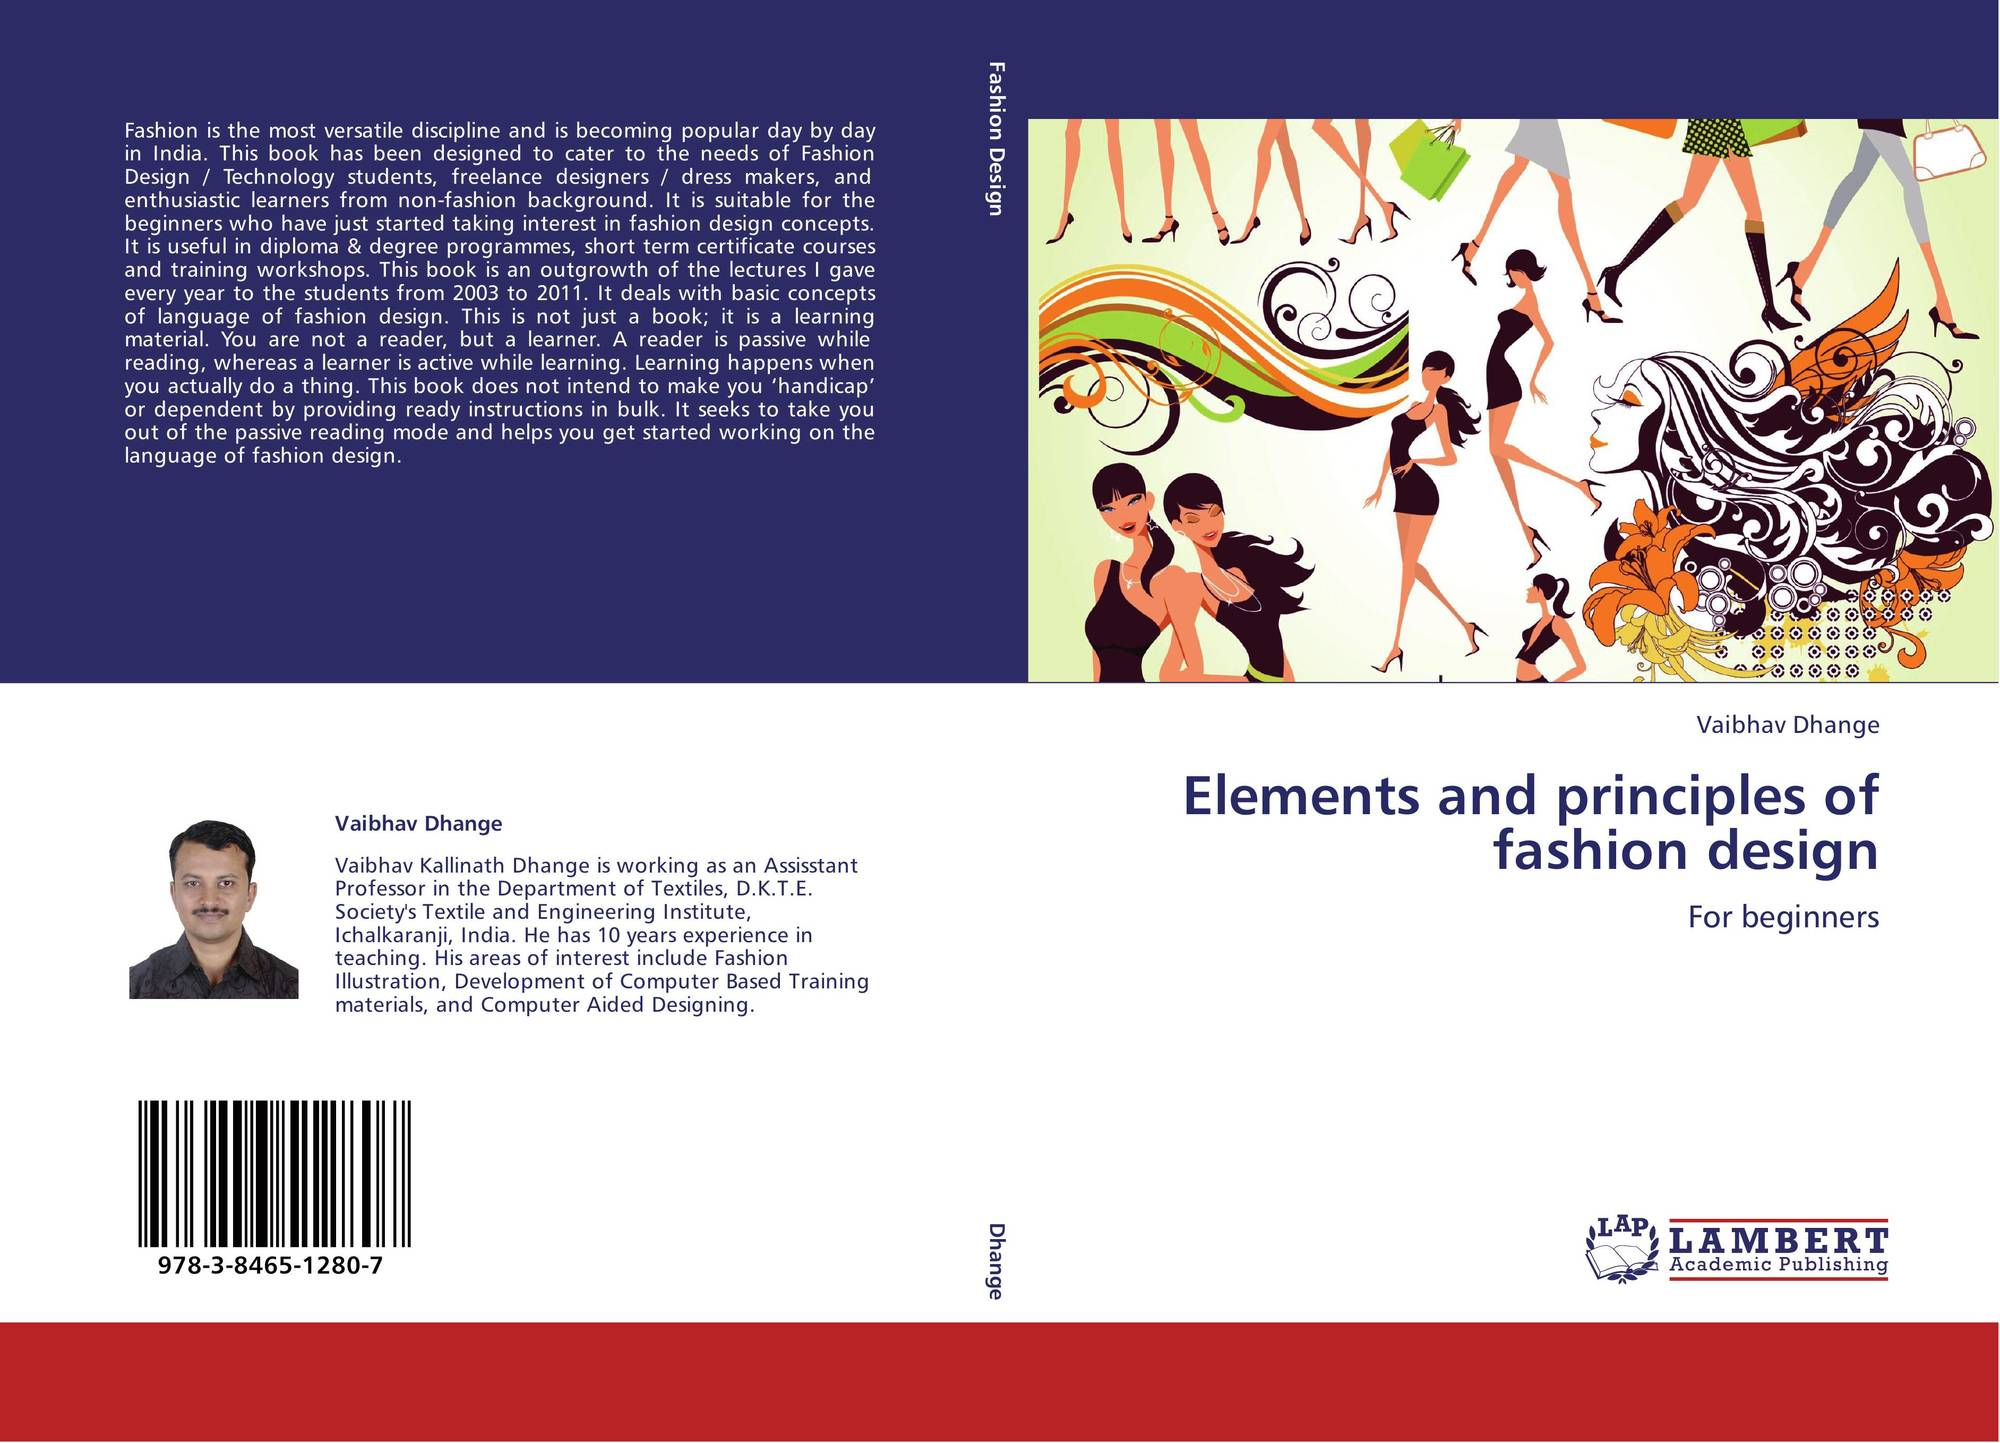 Elements Of Fashion Design : Elements and principles of fashion design